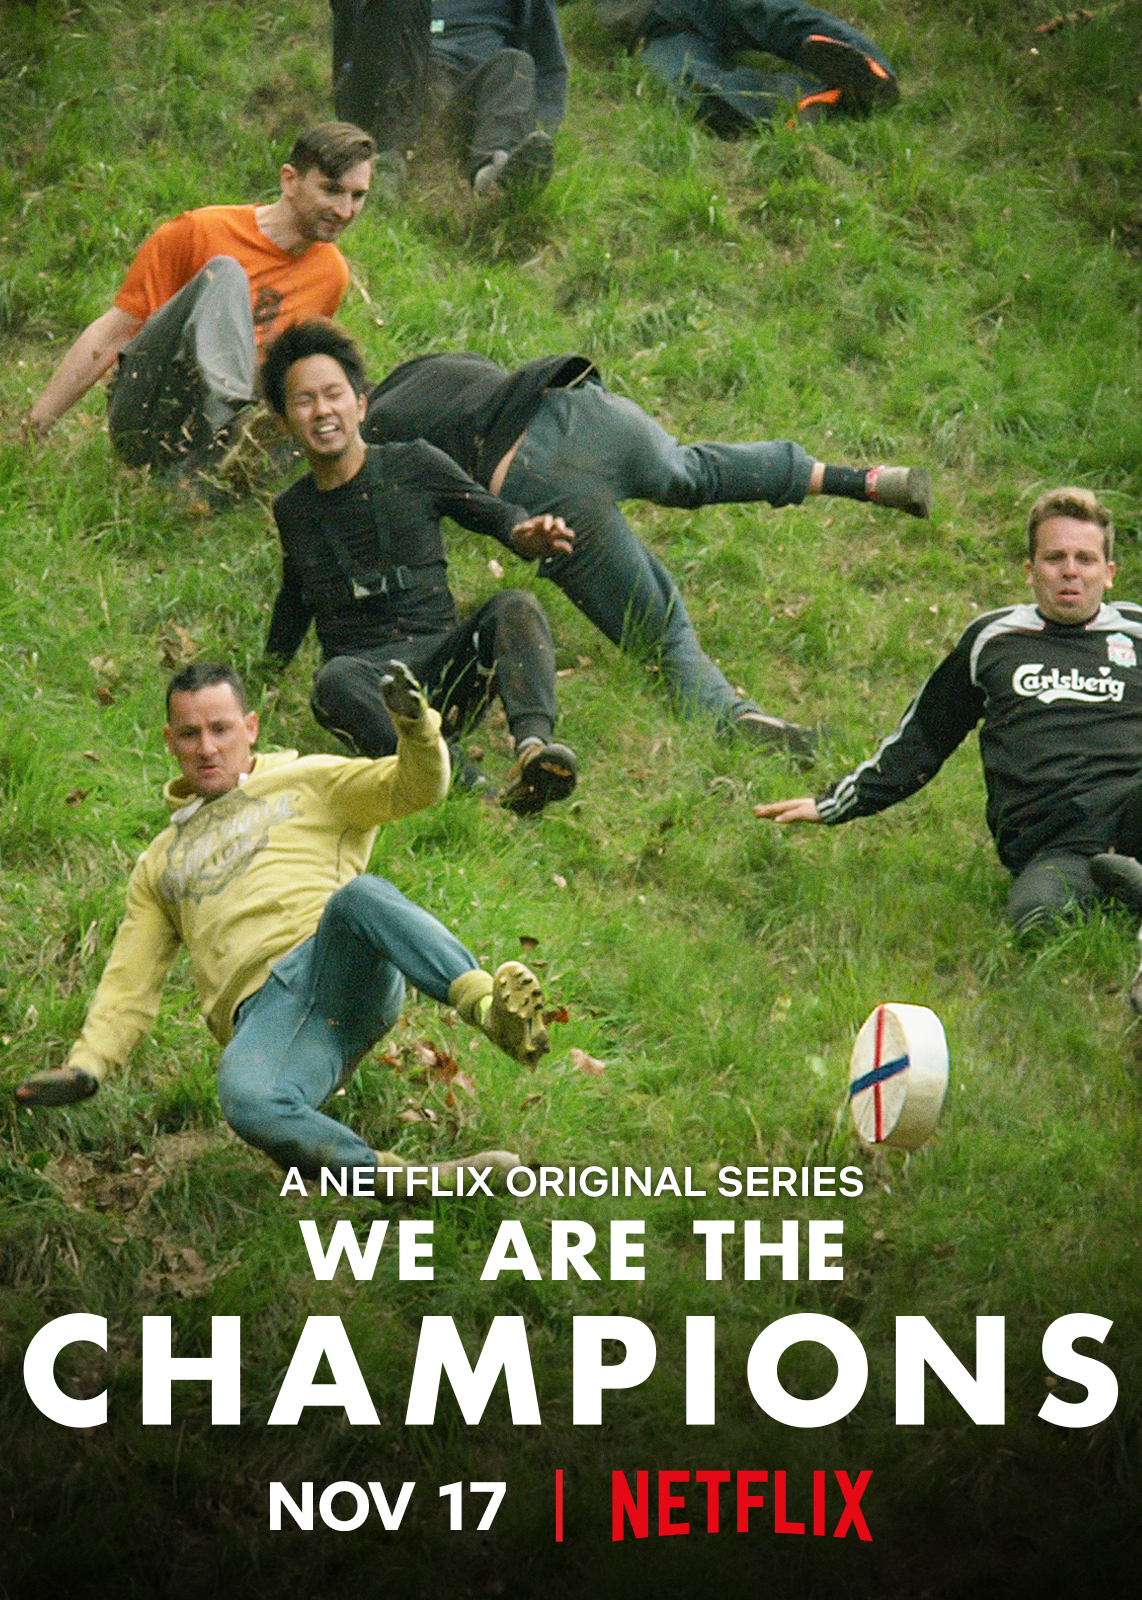 NETFLIX TRAILER DEBUT: We Are the Champions Premieres Nov 17th